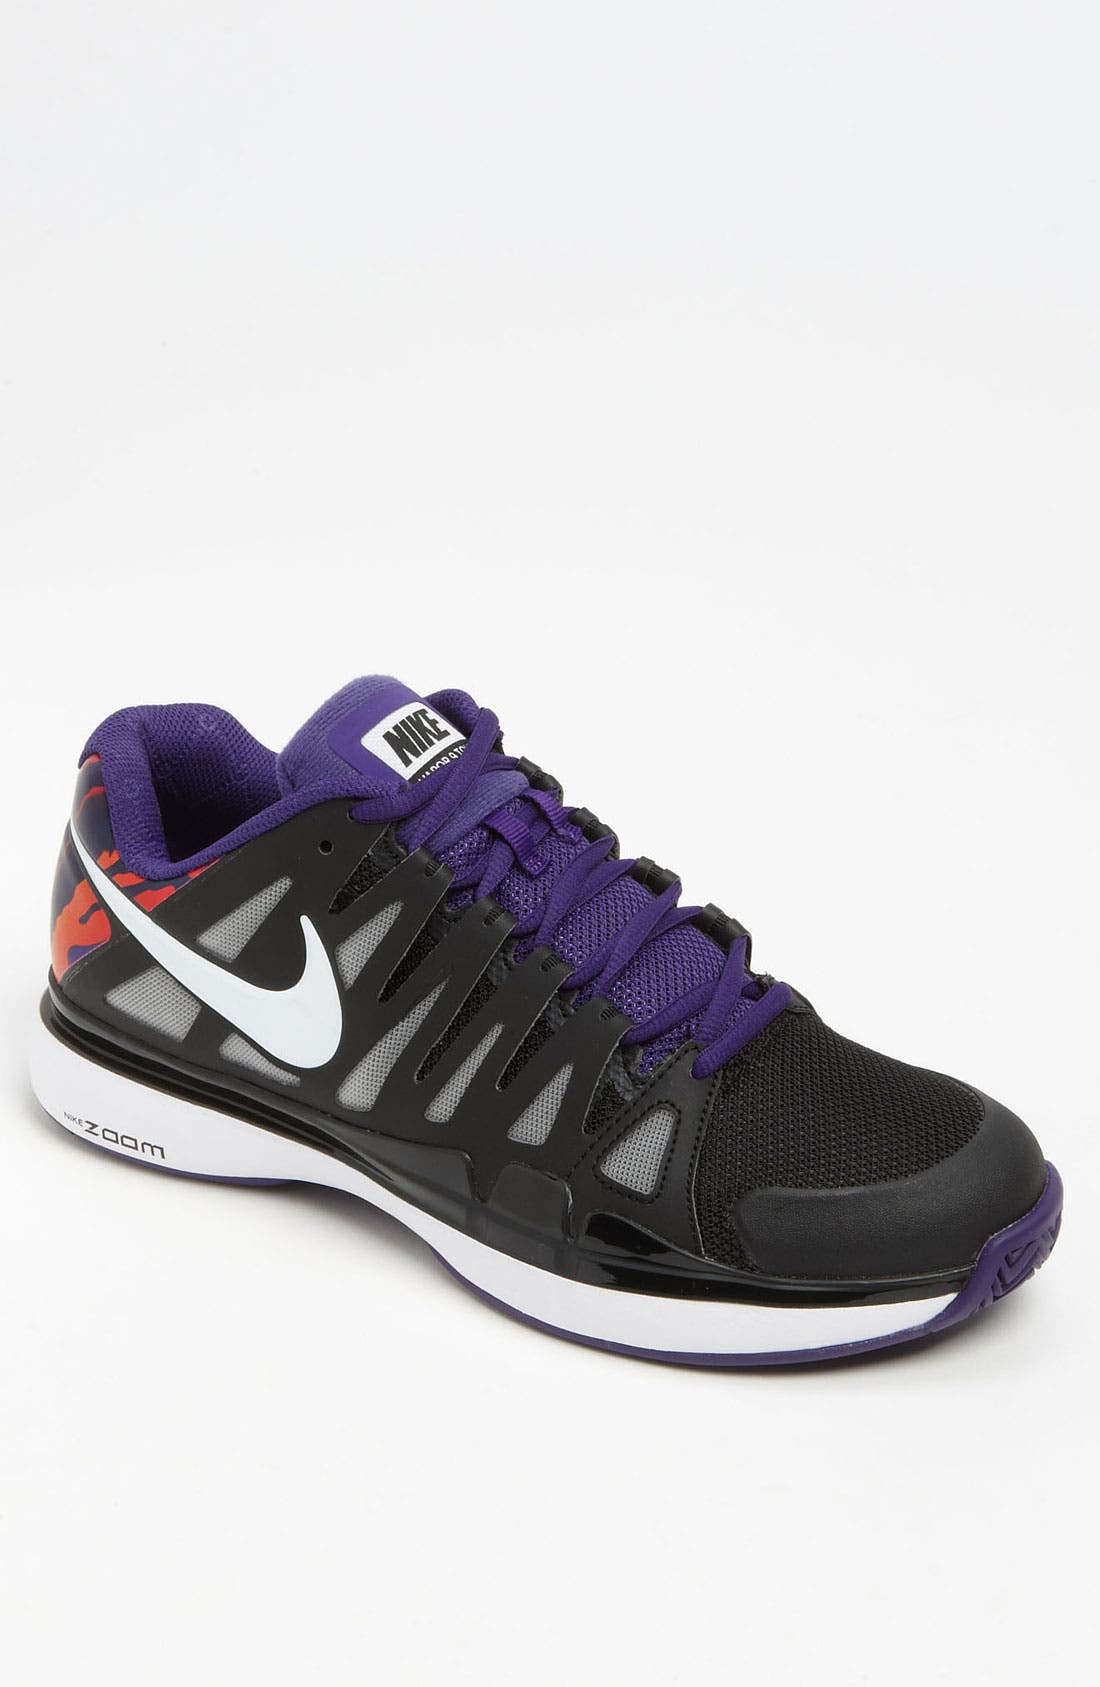 Main Image - Nike 'Zoom Vapor 9 Tour' Tennis Shoe (Men)